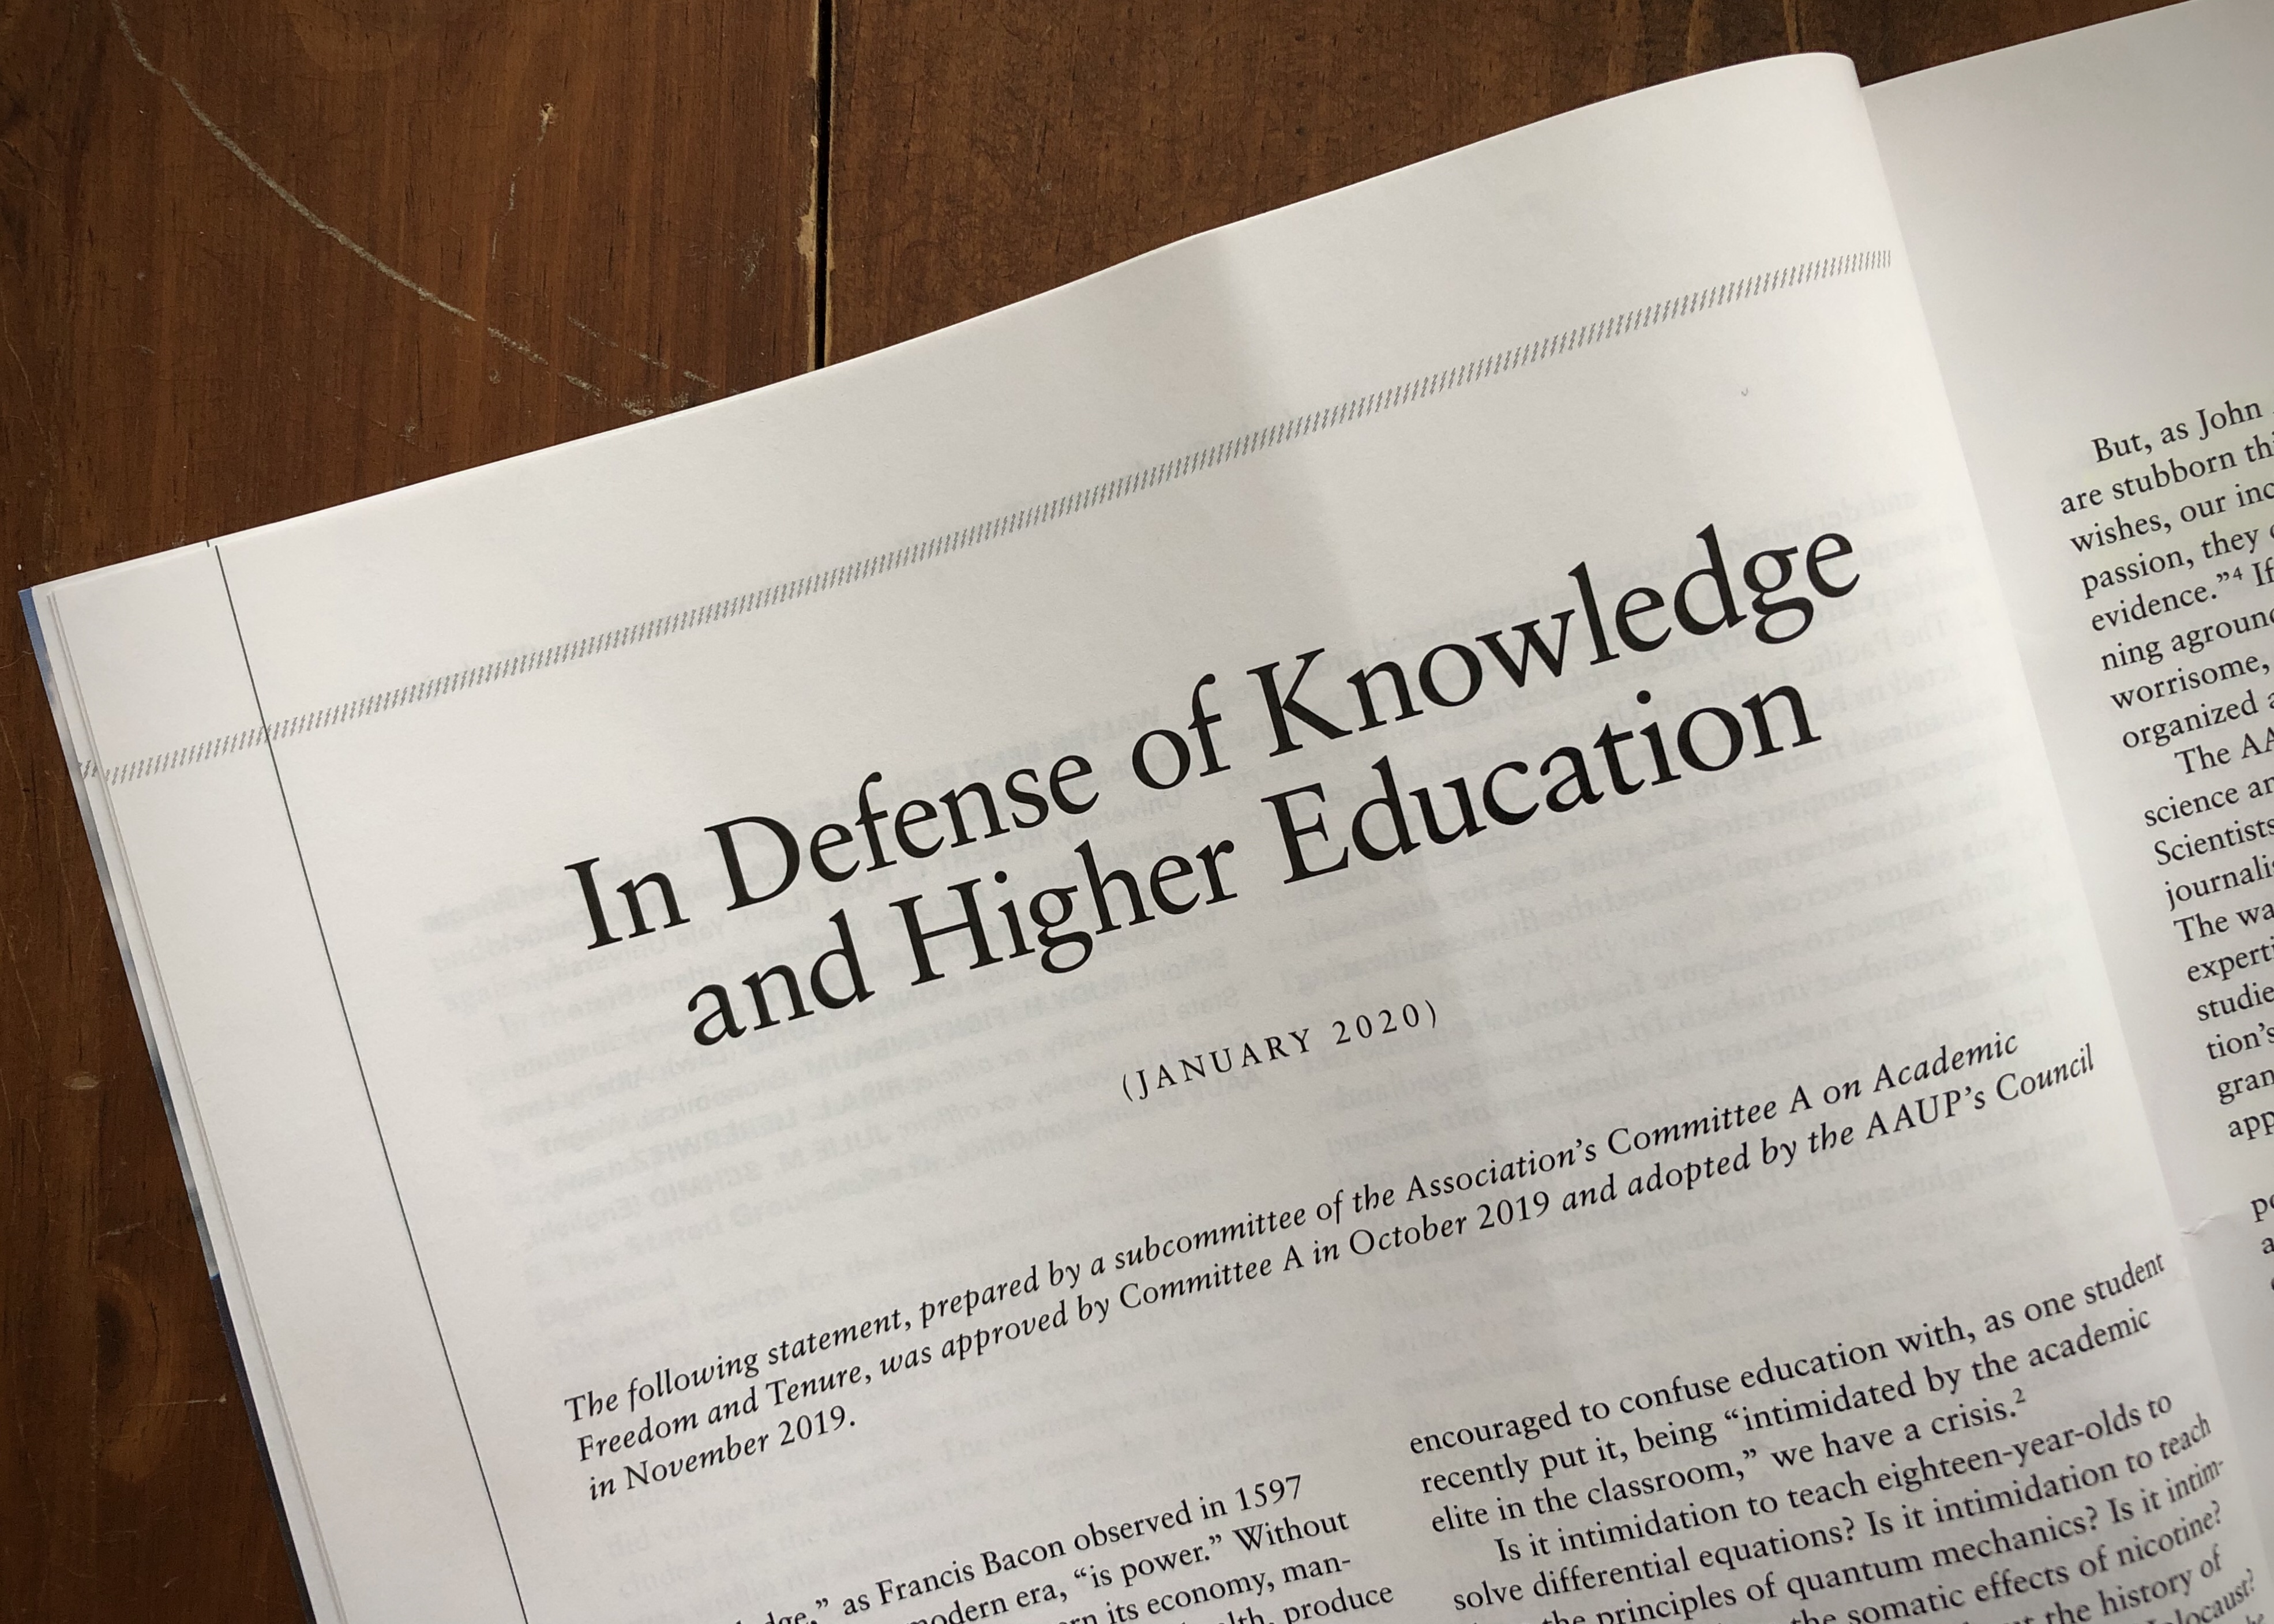 In Defense of Knowledge and Higher Education